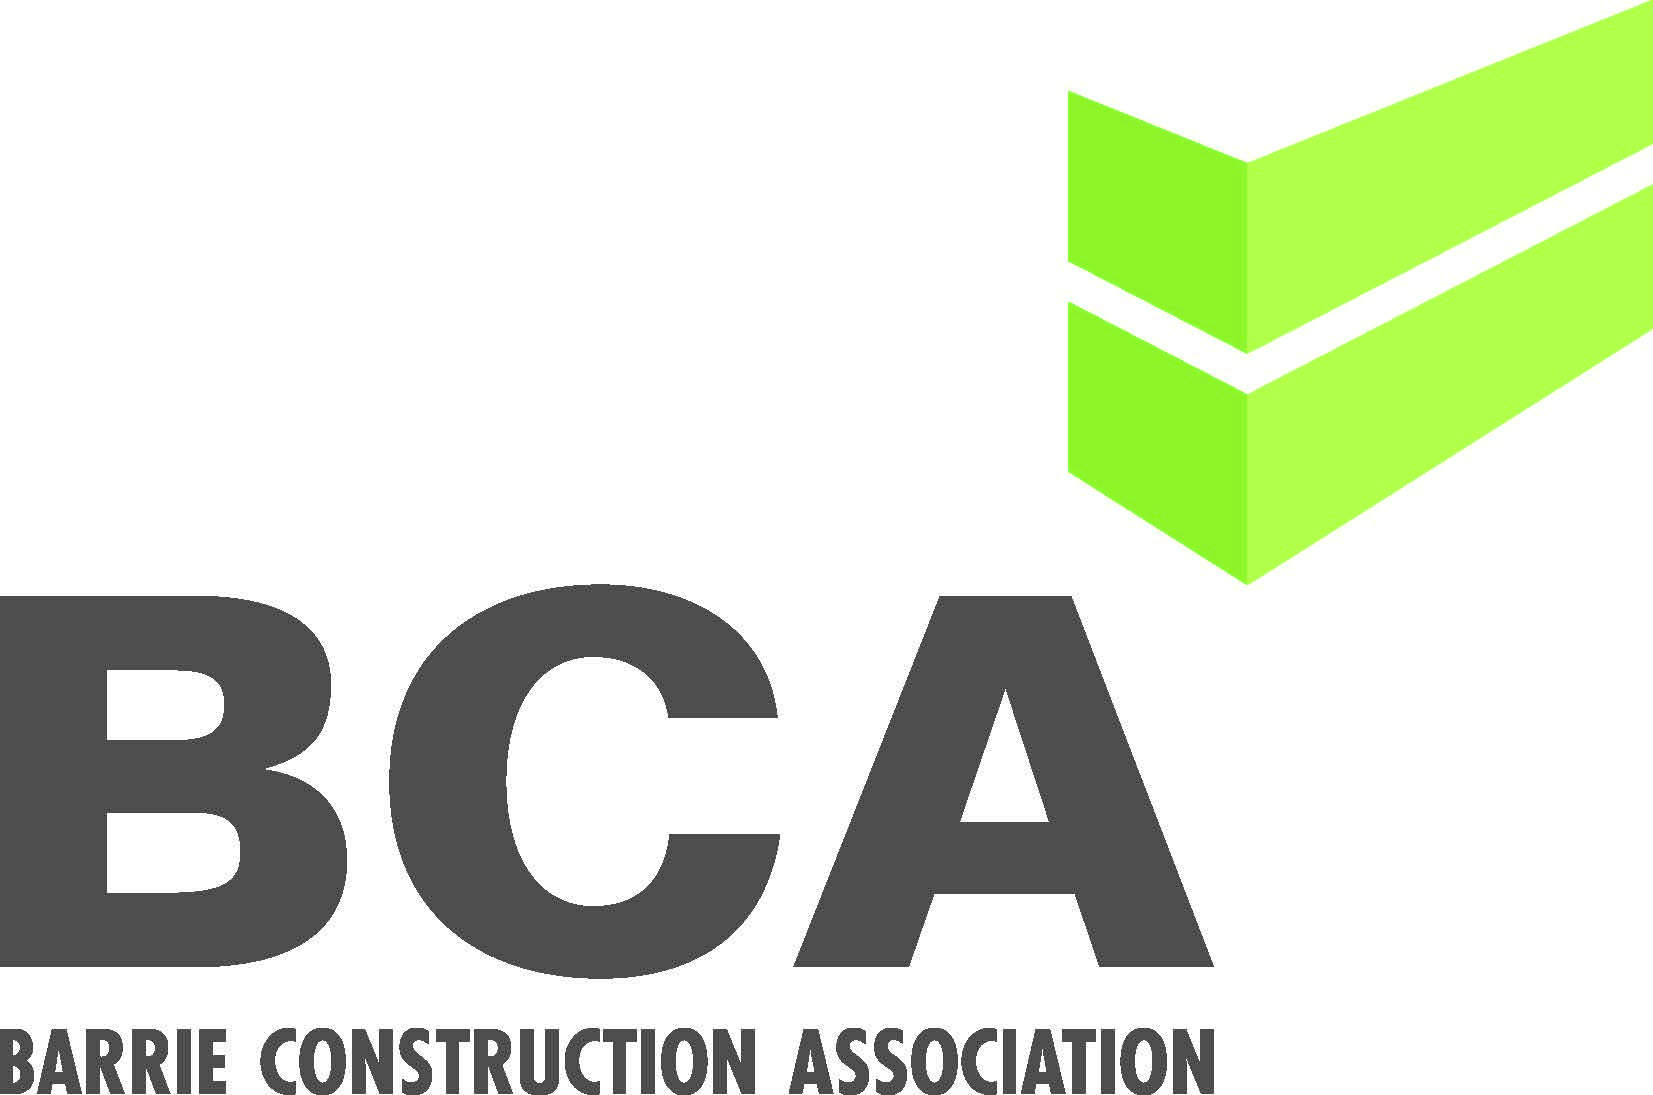 Barrie Construction Association logo